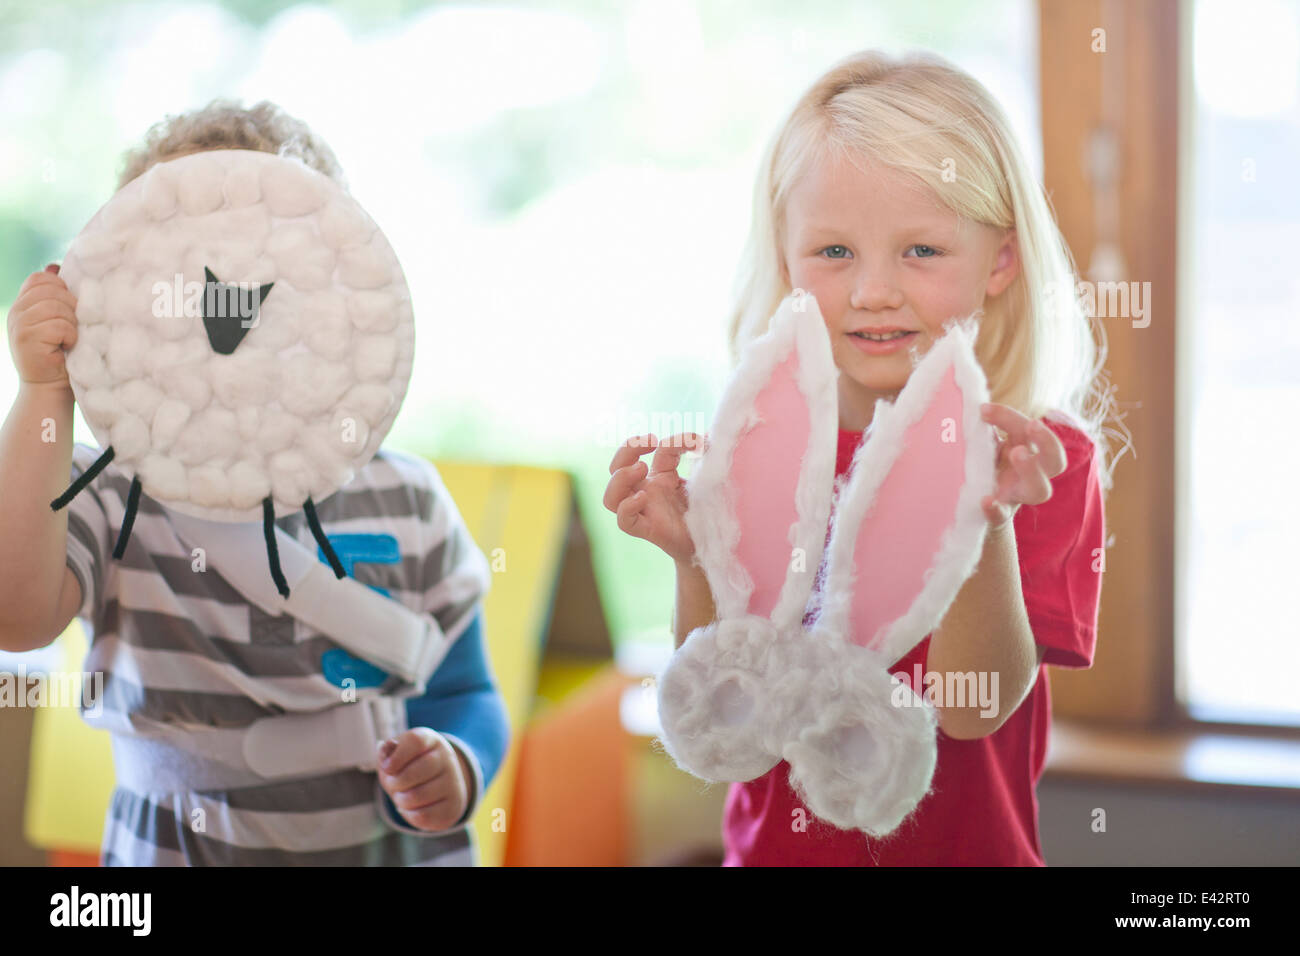 Boy and girl holding up sheep and rabbit creations at nursery school - Stock Image